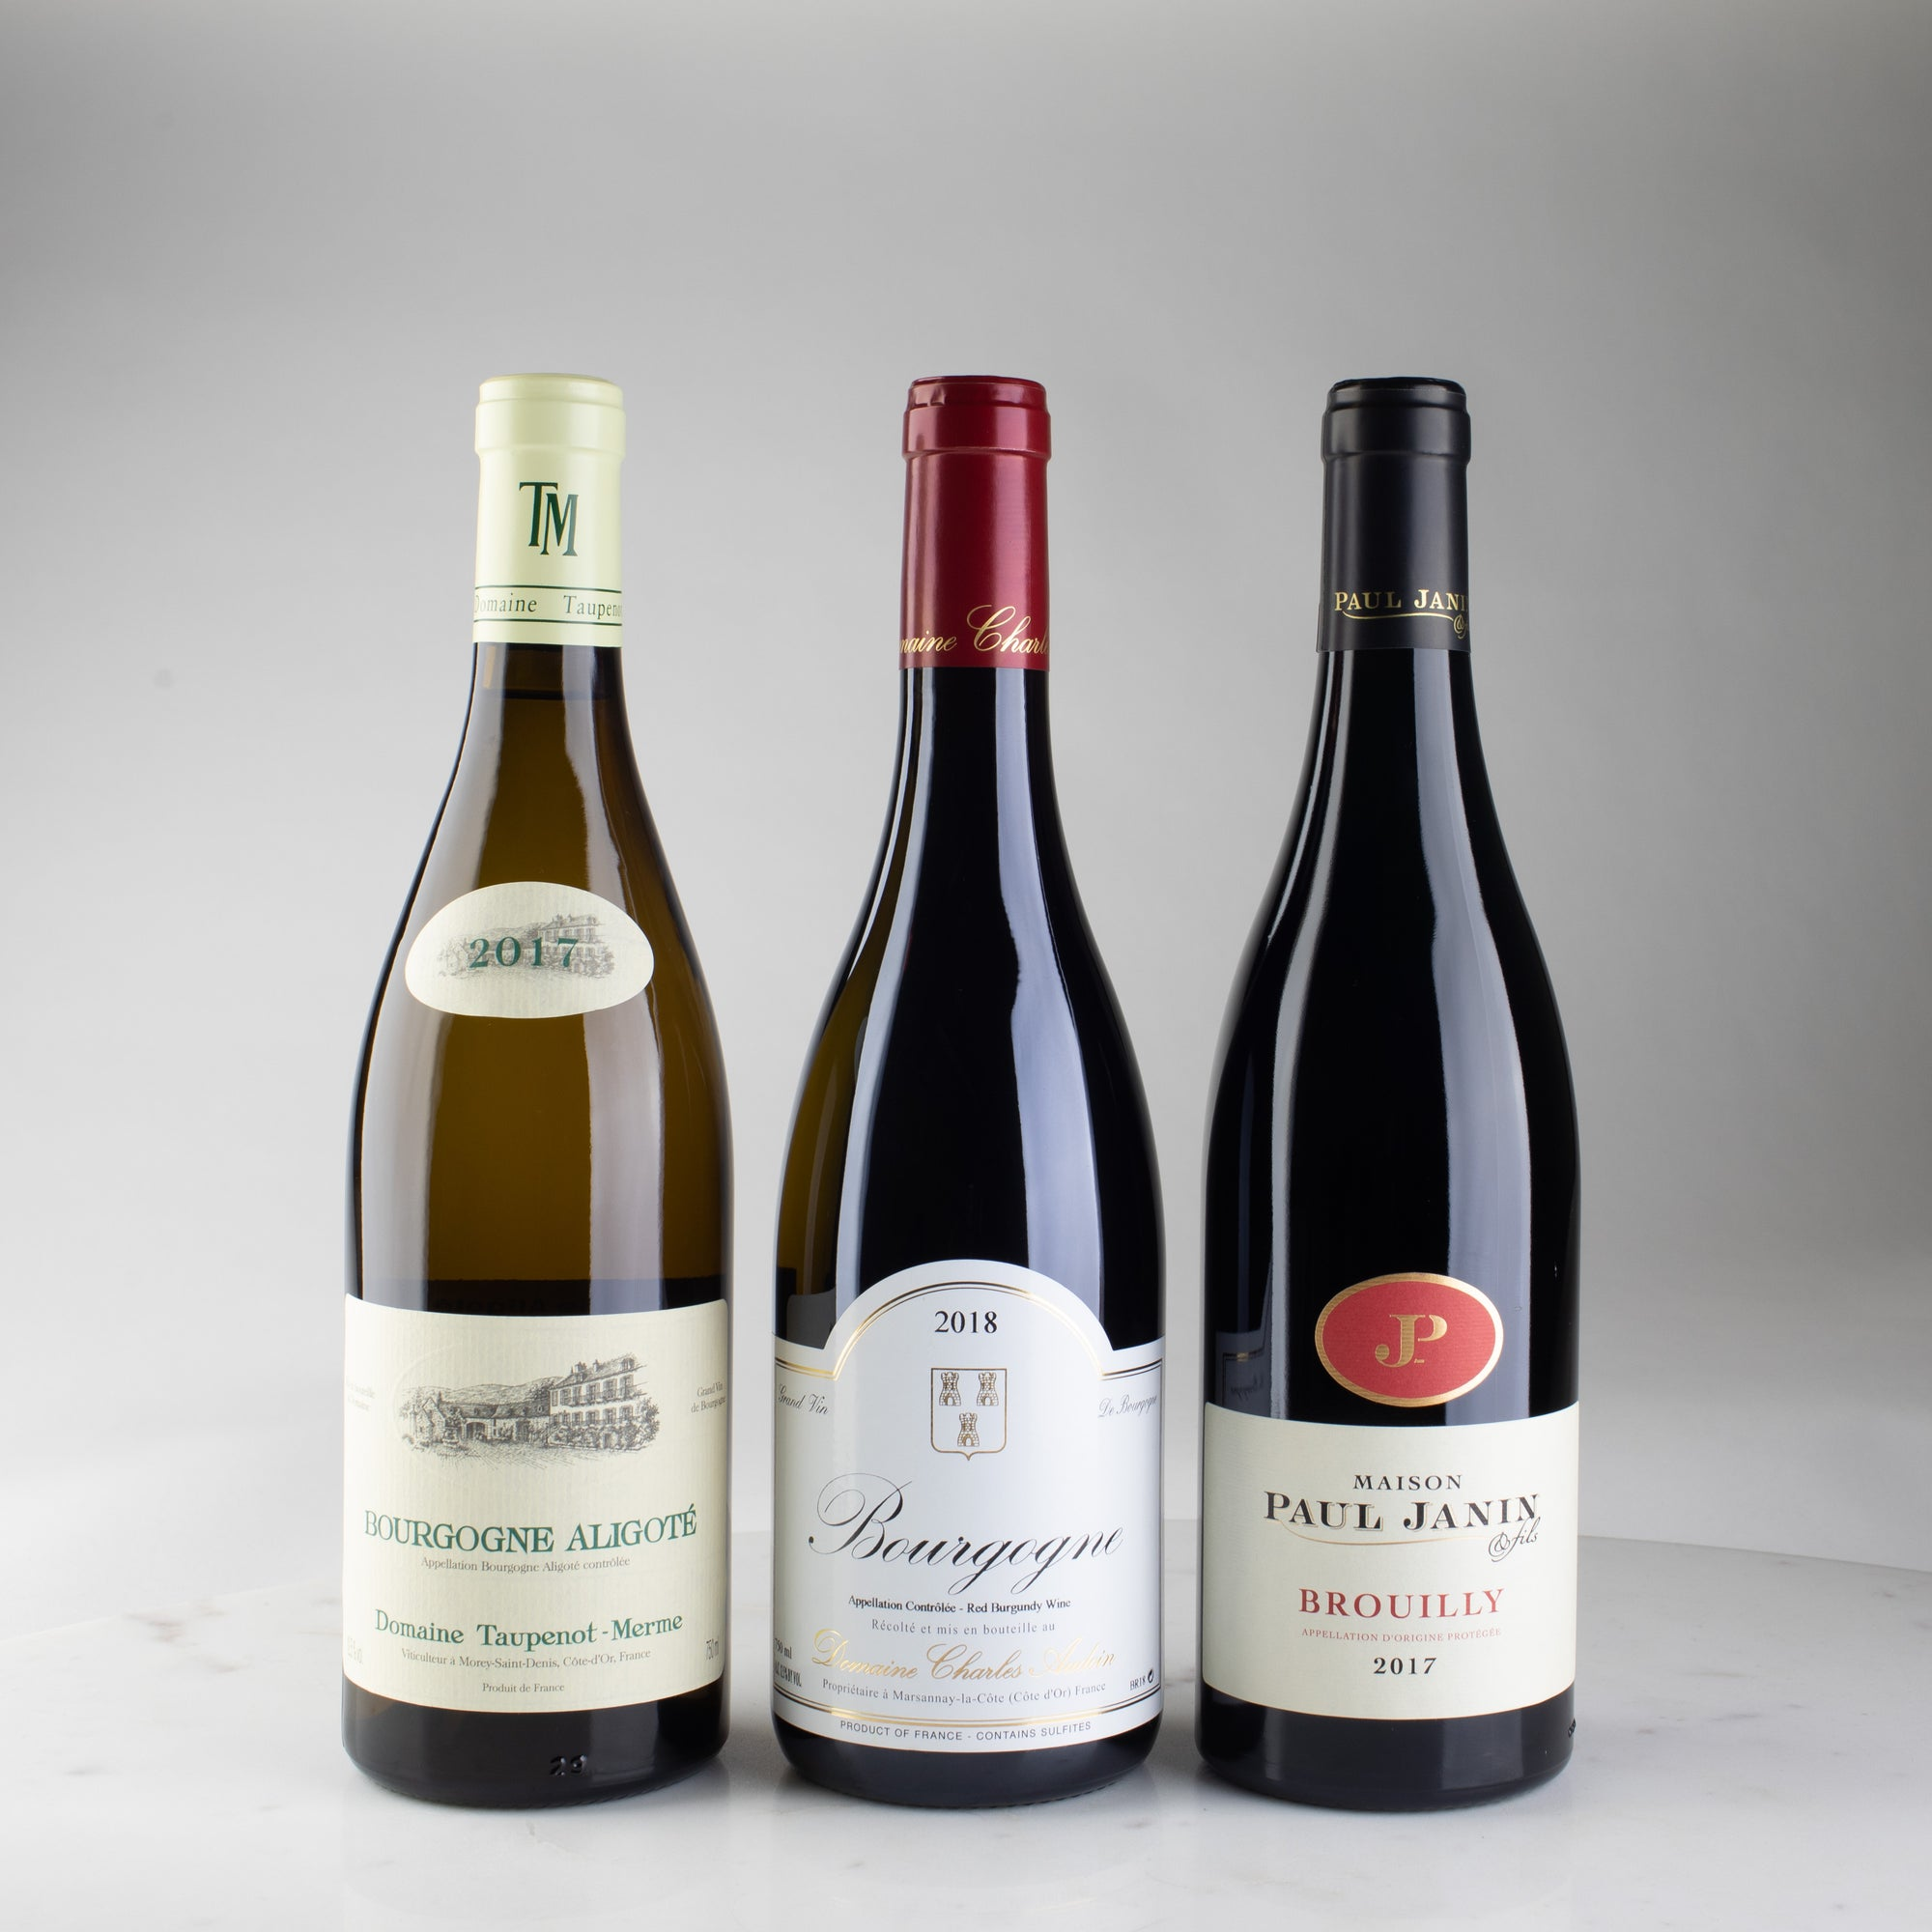 Case Made Wines, Wine delivery california, Taupenot-Merme Bourgogne-Aligoté 2017, Charles Audoin Bourgogne Rouge 2018, Paul Janin Brouilly 2017